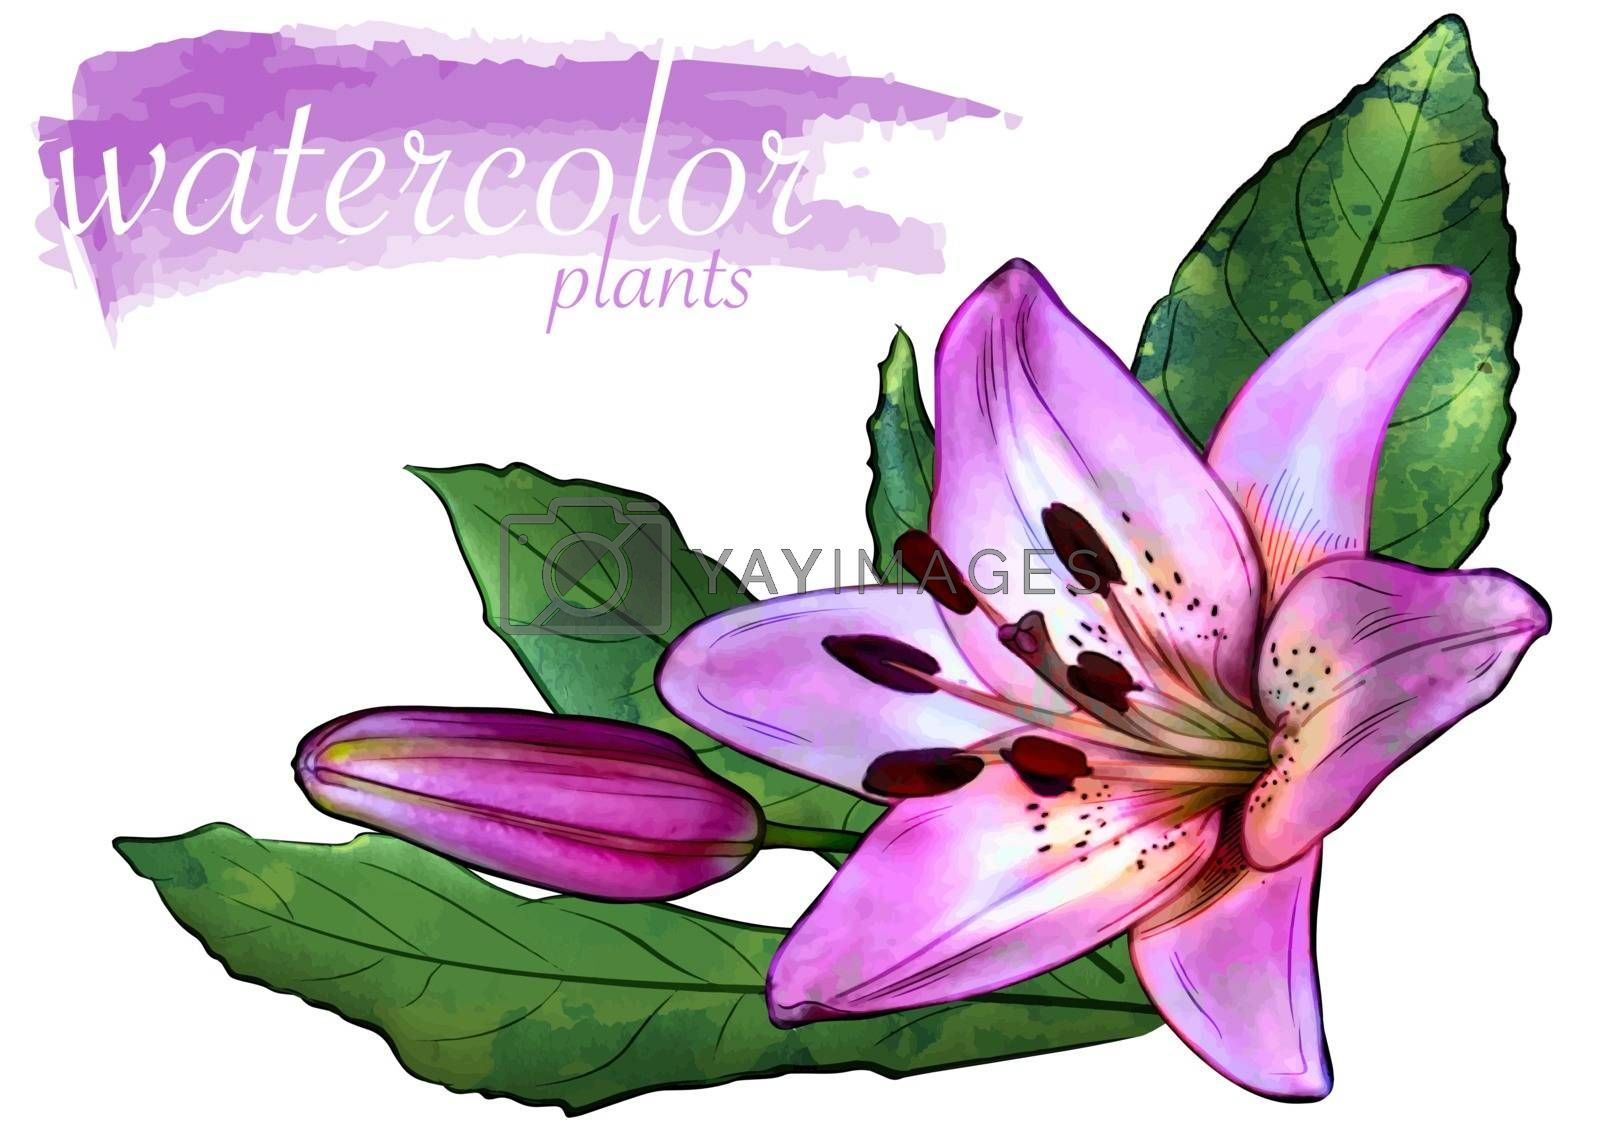 Purple Watercolor Flower with Leafs by illustratorCZ